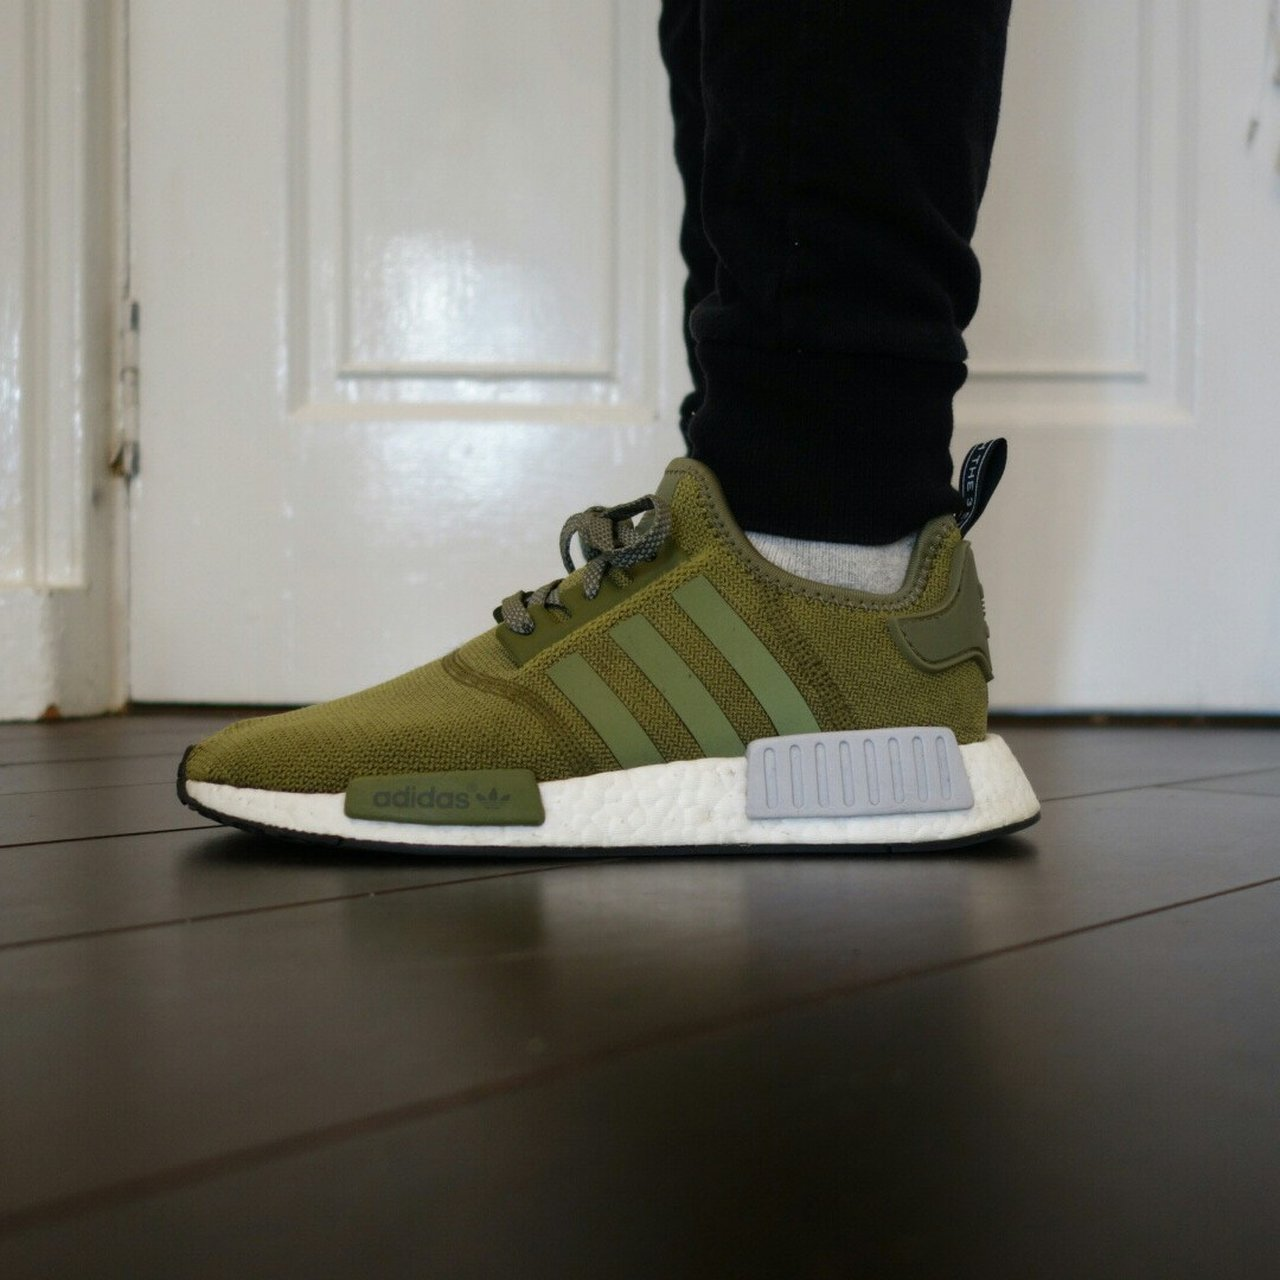 Adidas NMD R1 Olive Cargo Green European Exclusive • UK 7 • - Depop f39f590faaf0